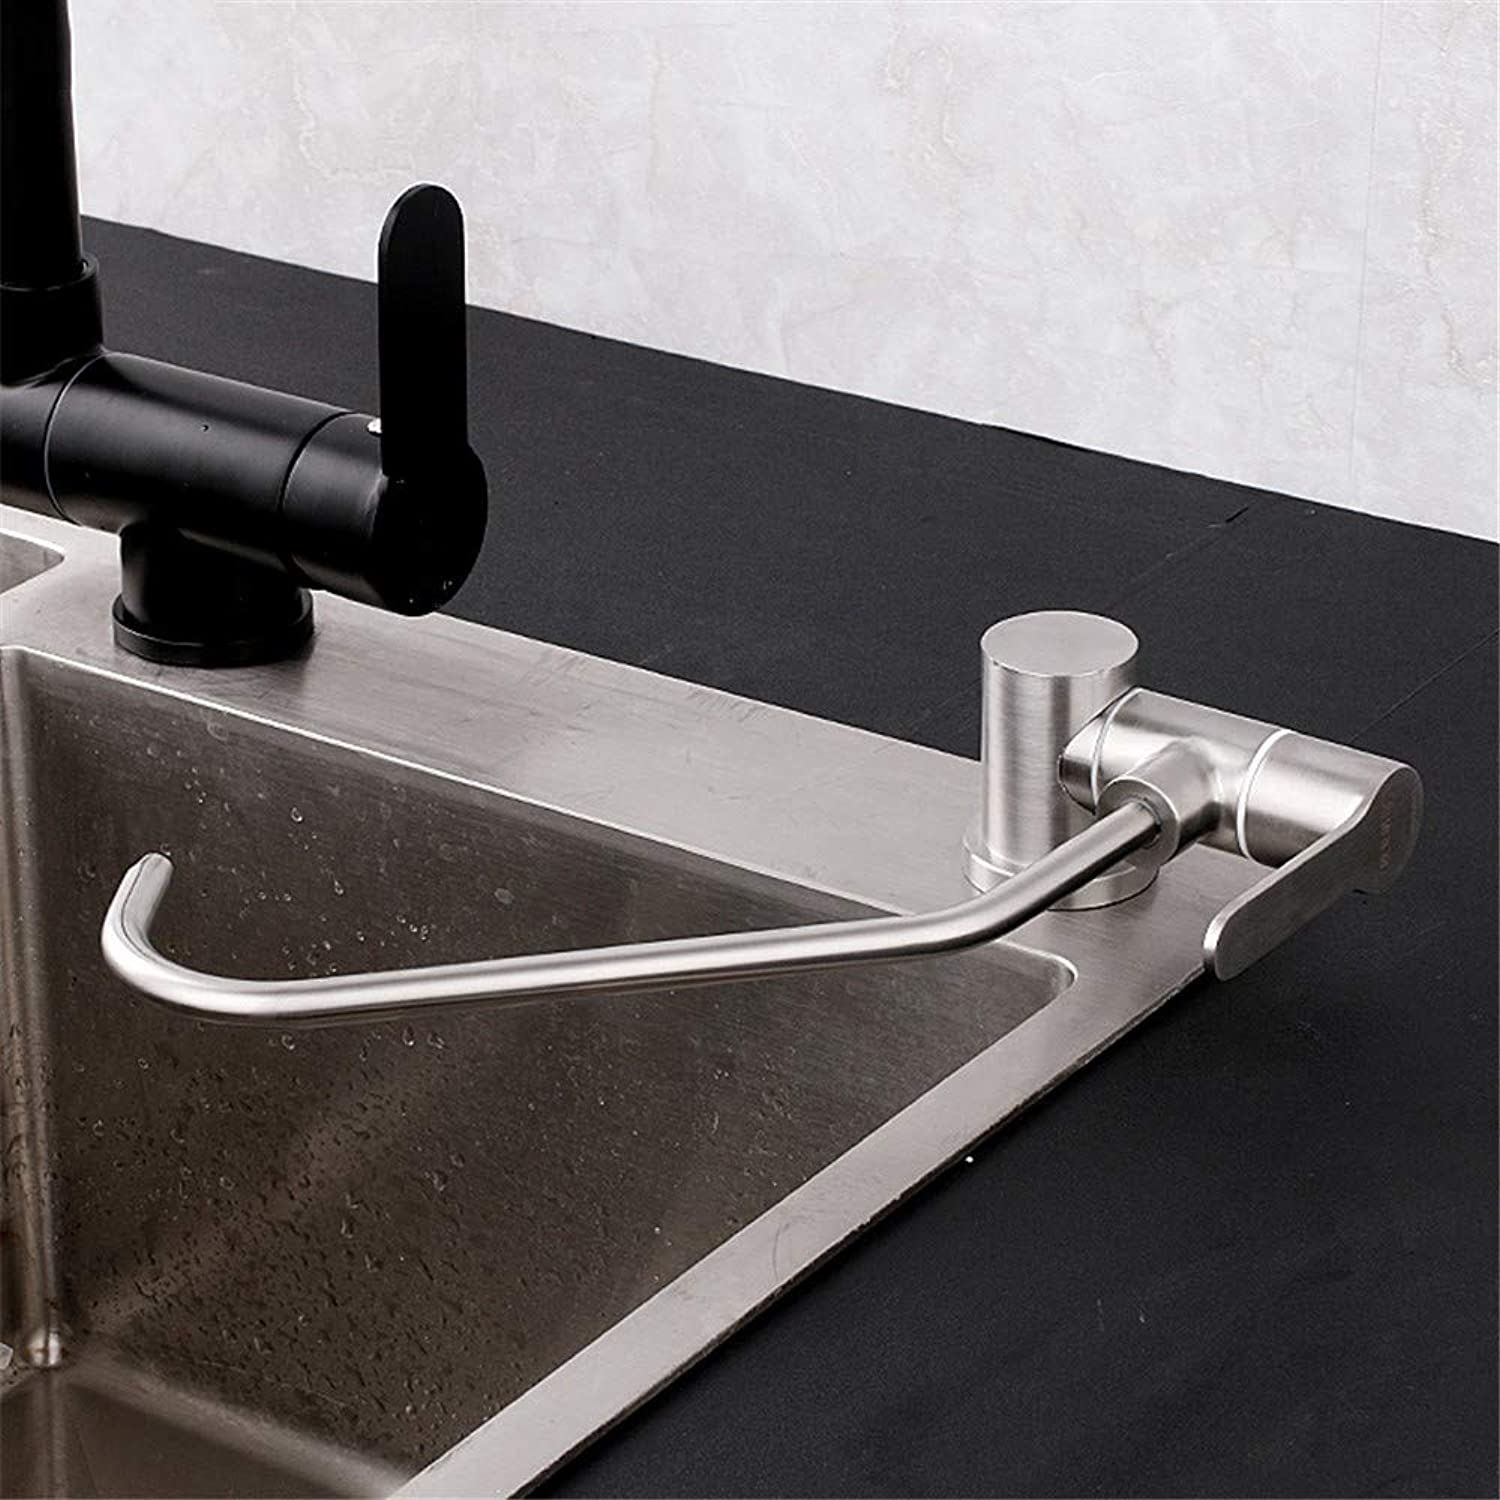 Kitchen Faucet, 304 Stainless Steel Kitchen Single Cold Straight Drinking Water Faucet, Foldable Faucet,A